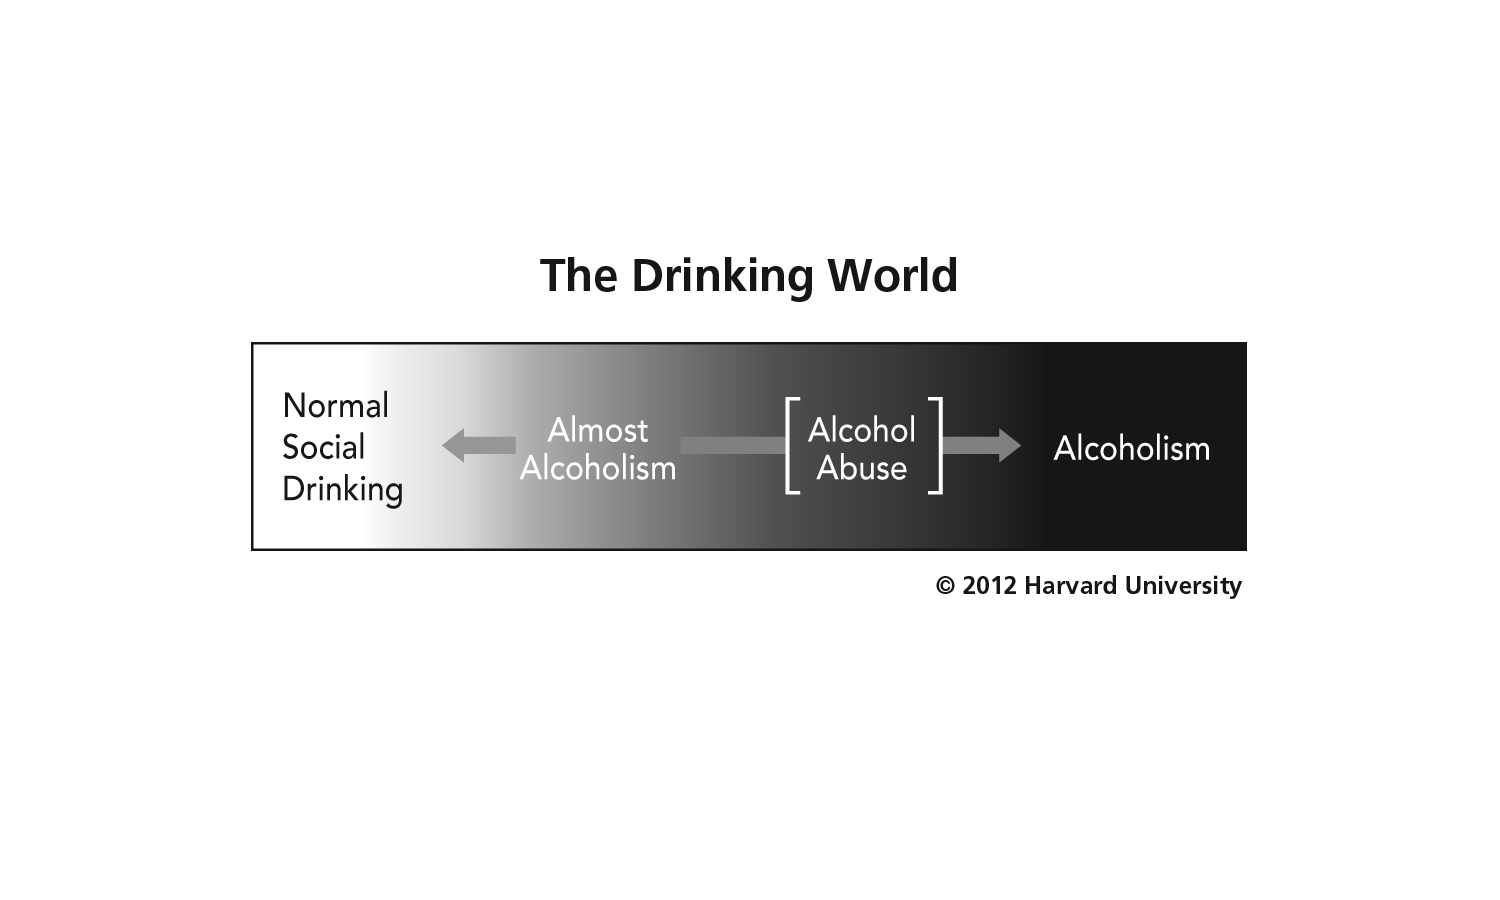 disturbed sleep and its relationship to alcohol use